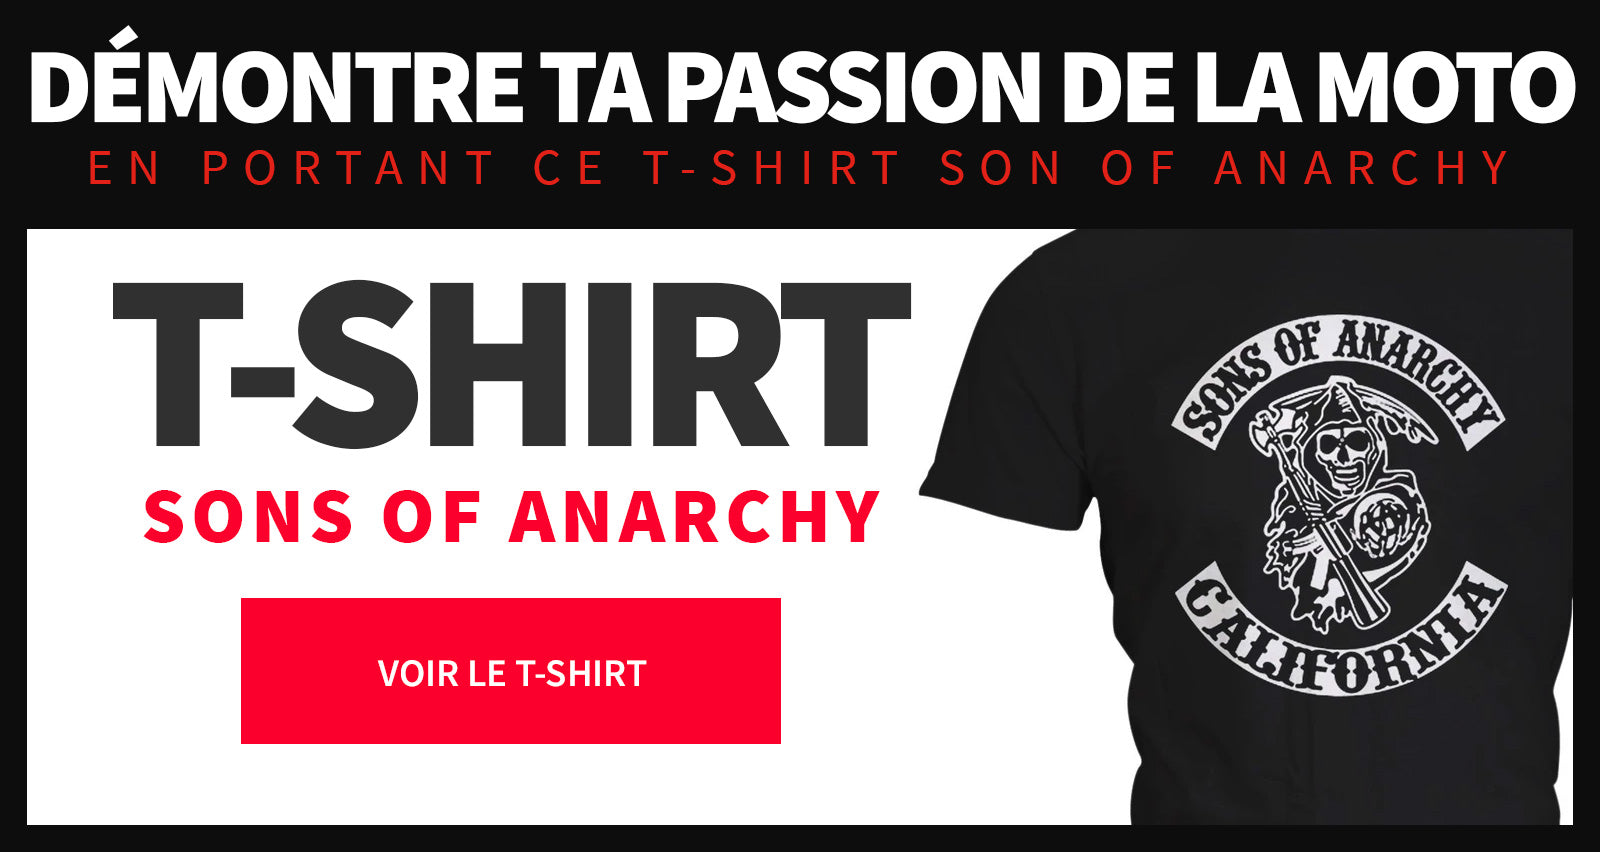 T shirt son of anarchy